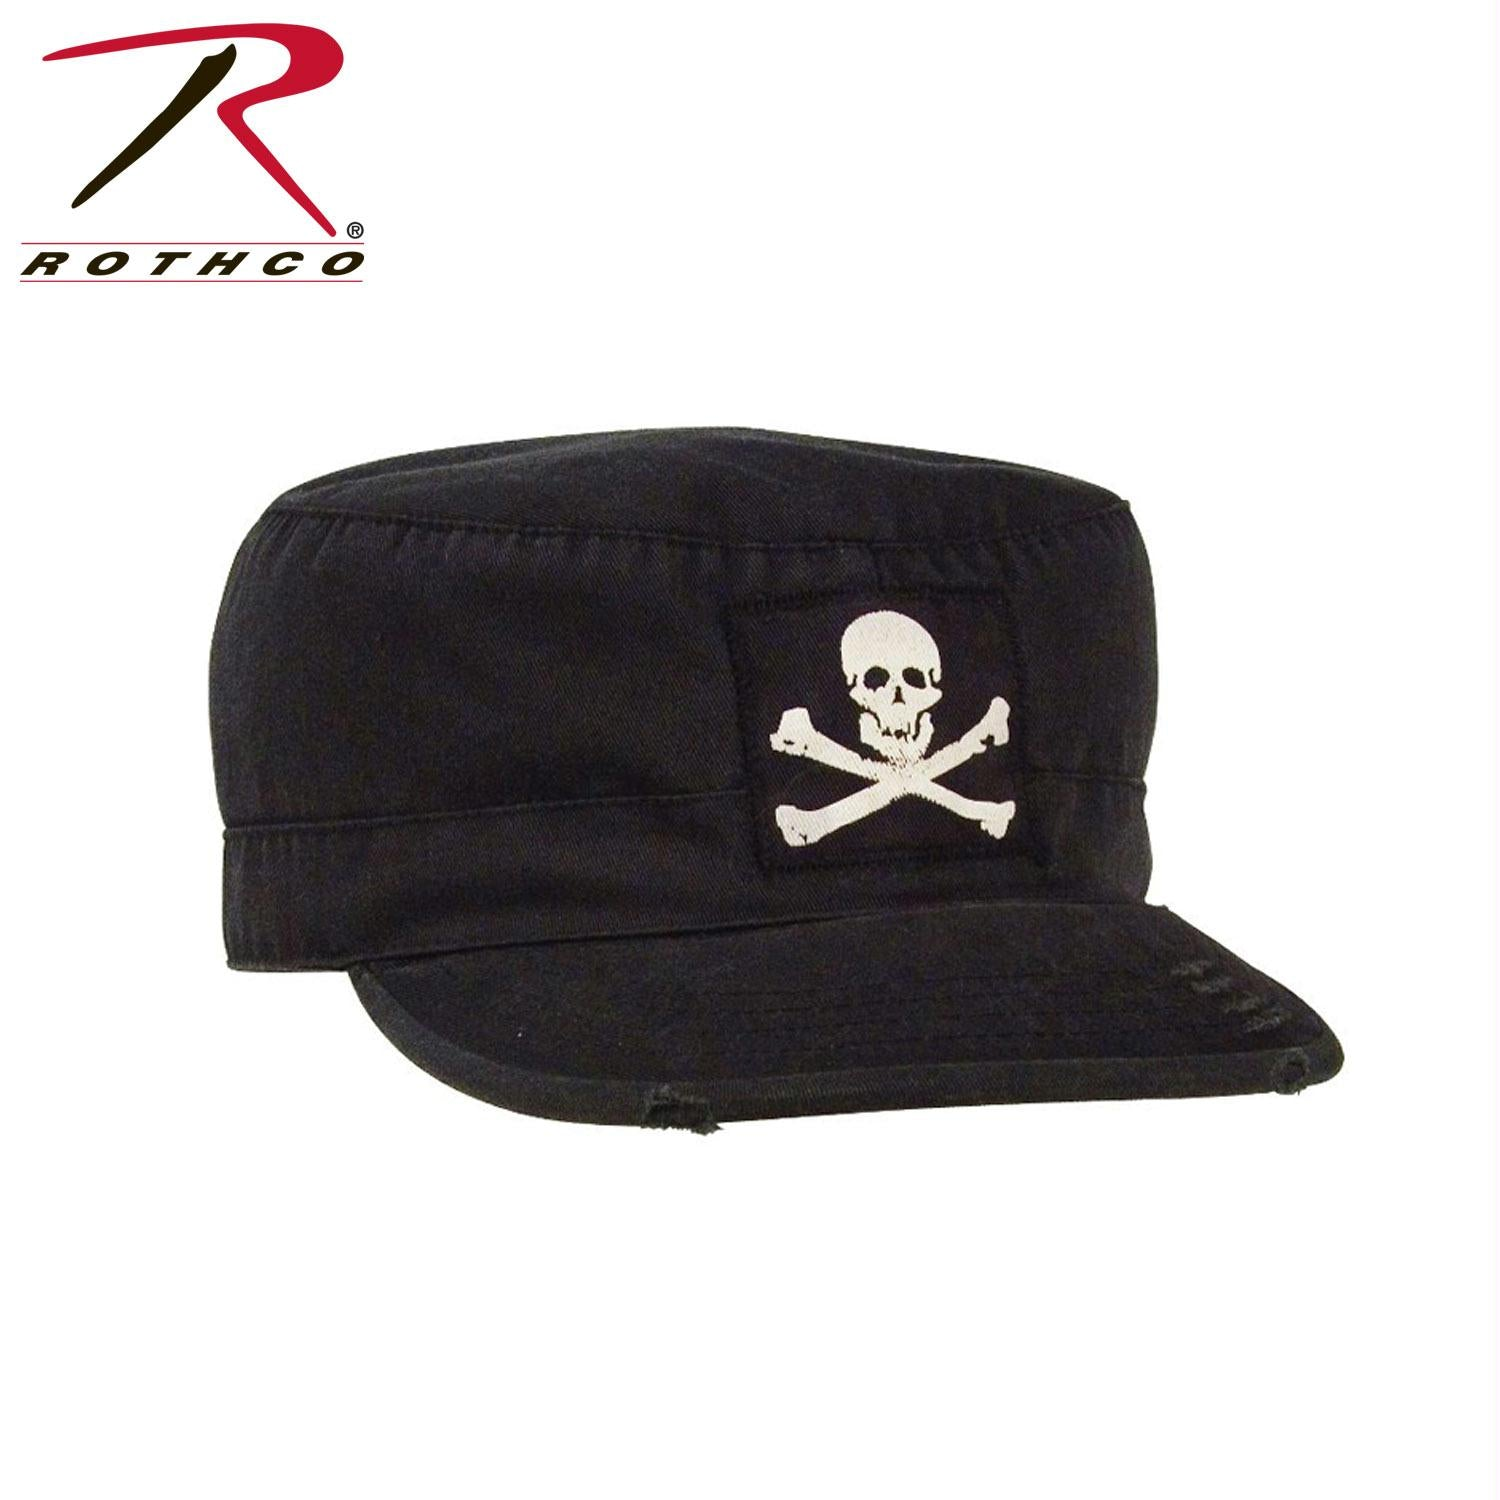 Rothco Vintage Military Fatigue Cap With Jolly Roger - L